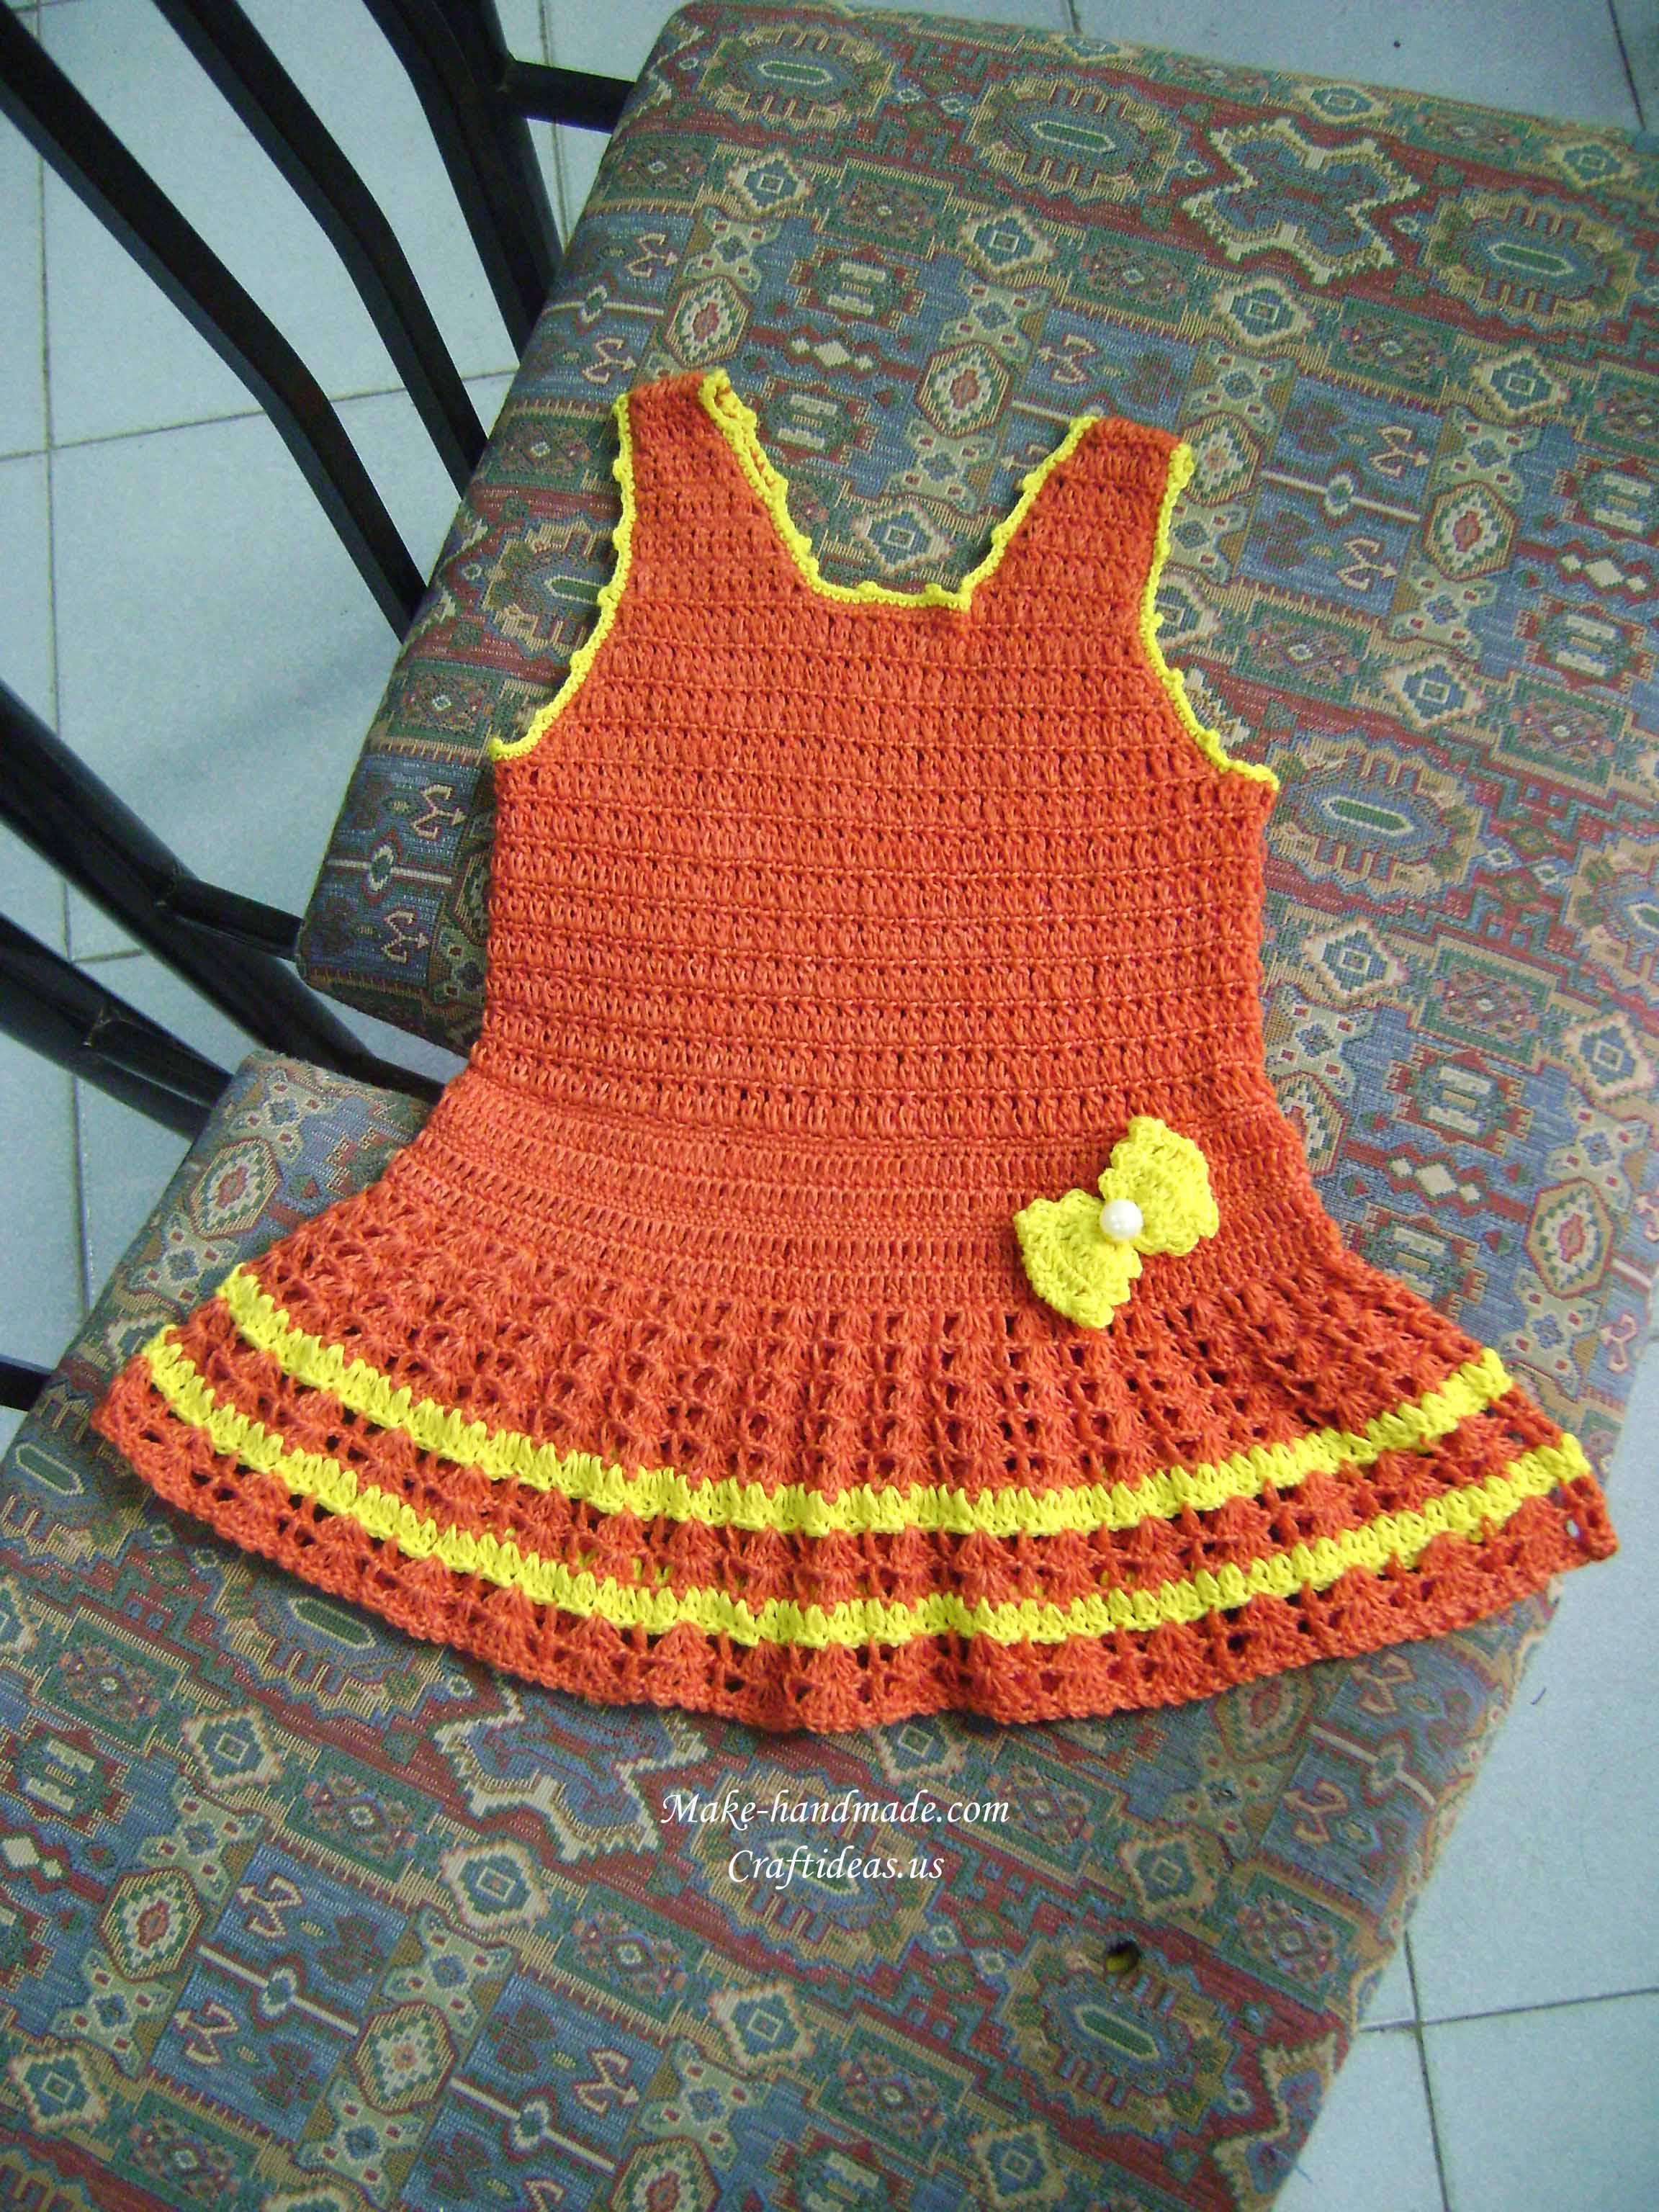 crochet cute baby dress with a bow | make handmade, crochet, craft